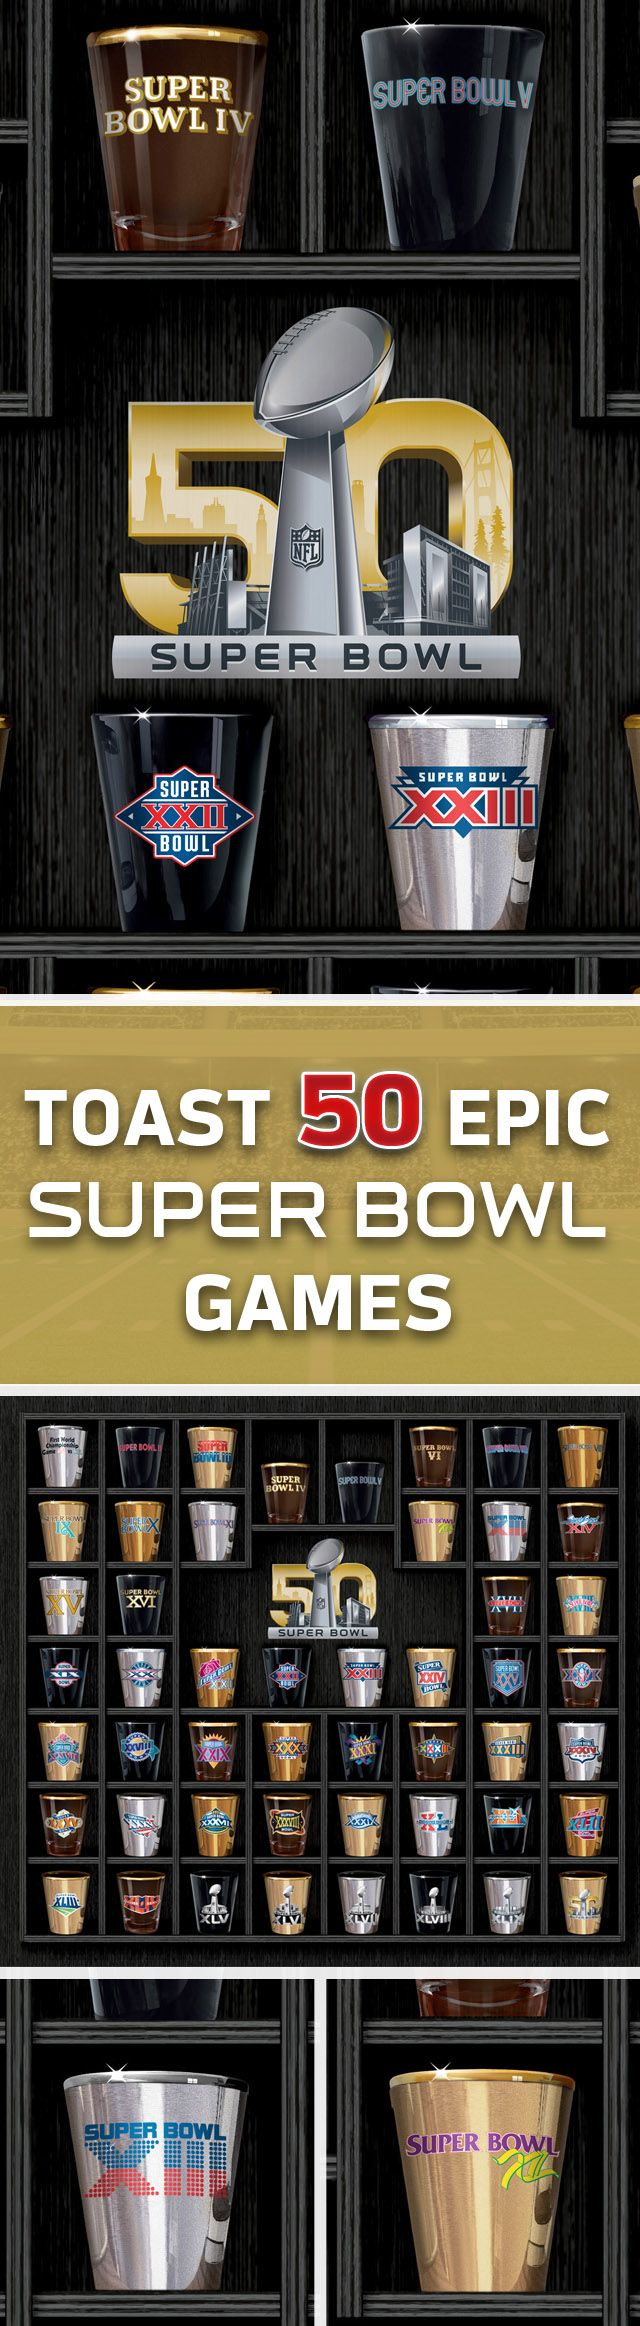 Salute fifty years of historic NFL matchups with this limited-edition shot glass collection. Includes a custom display and landmark Super Bowl 50 logo.